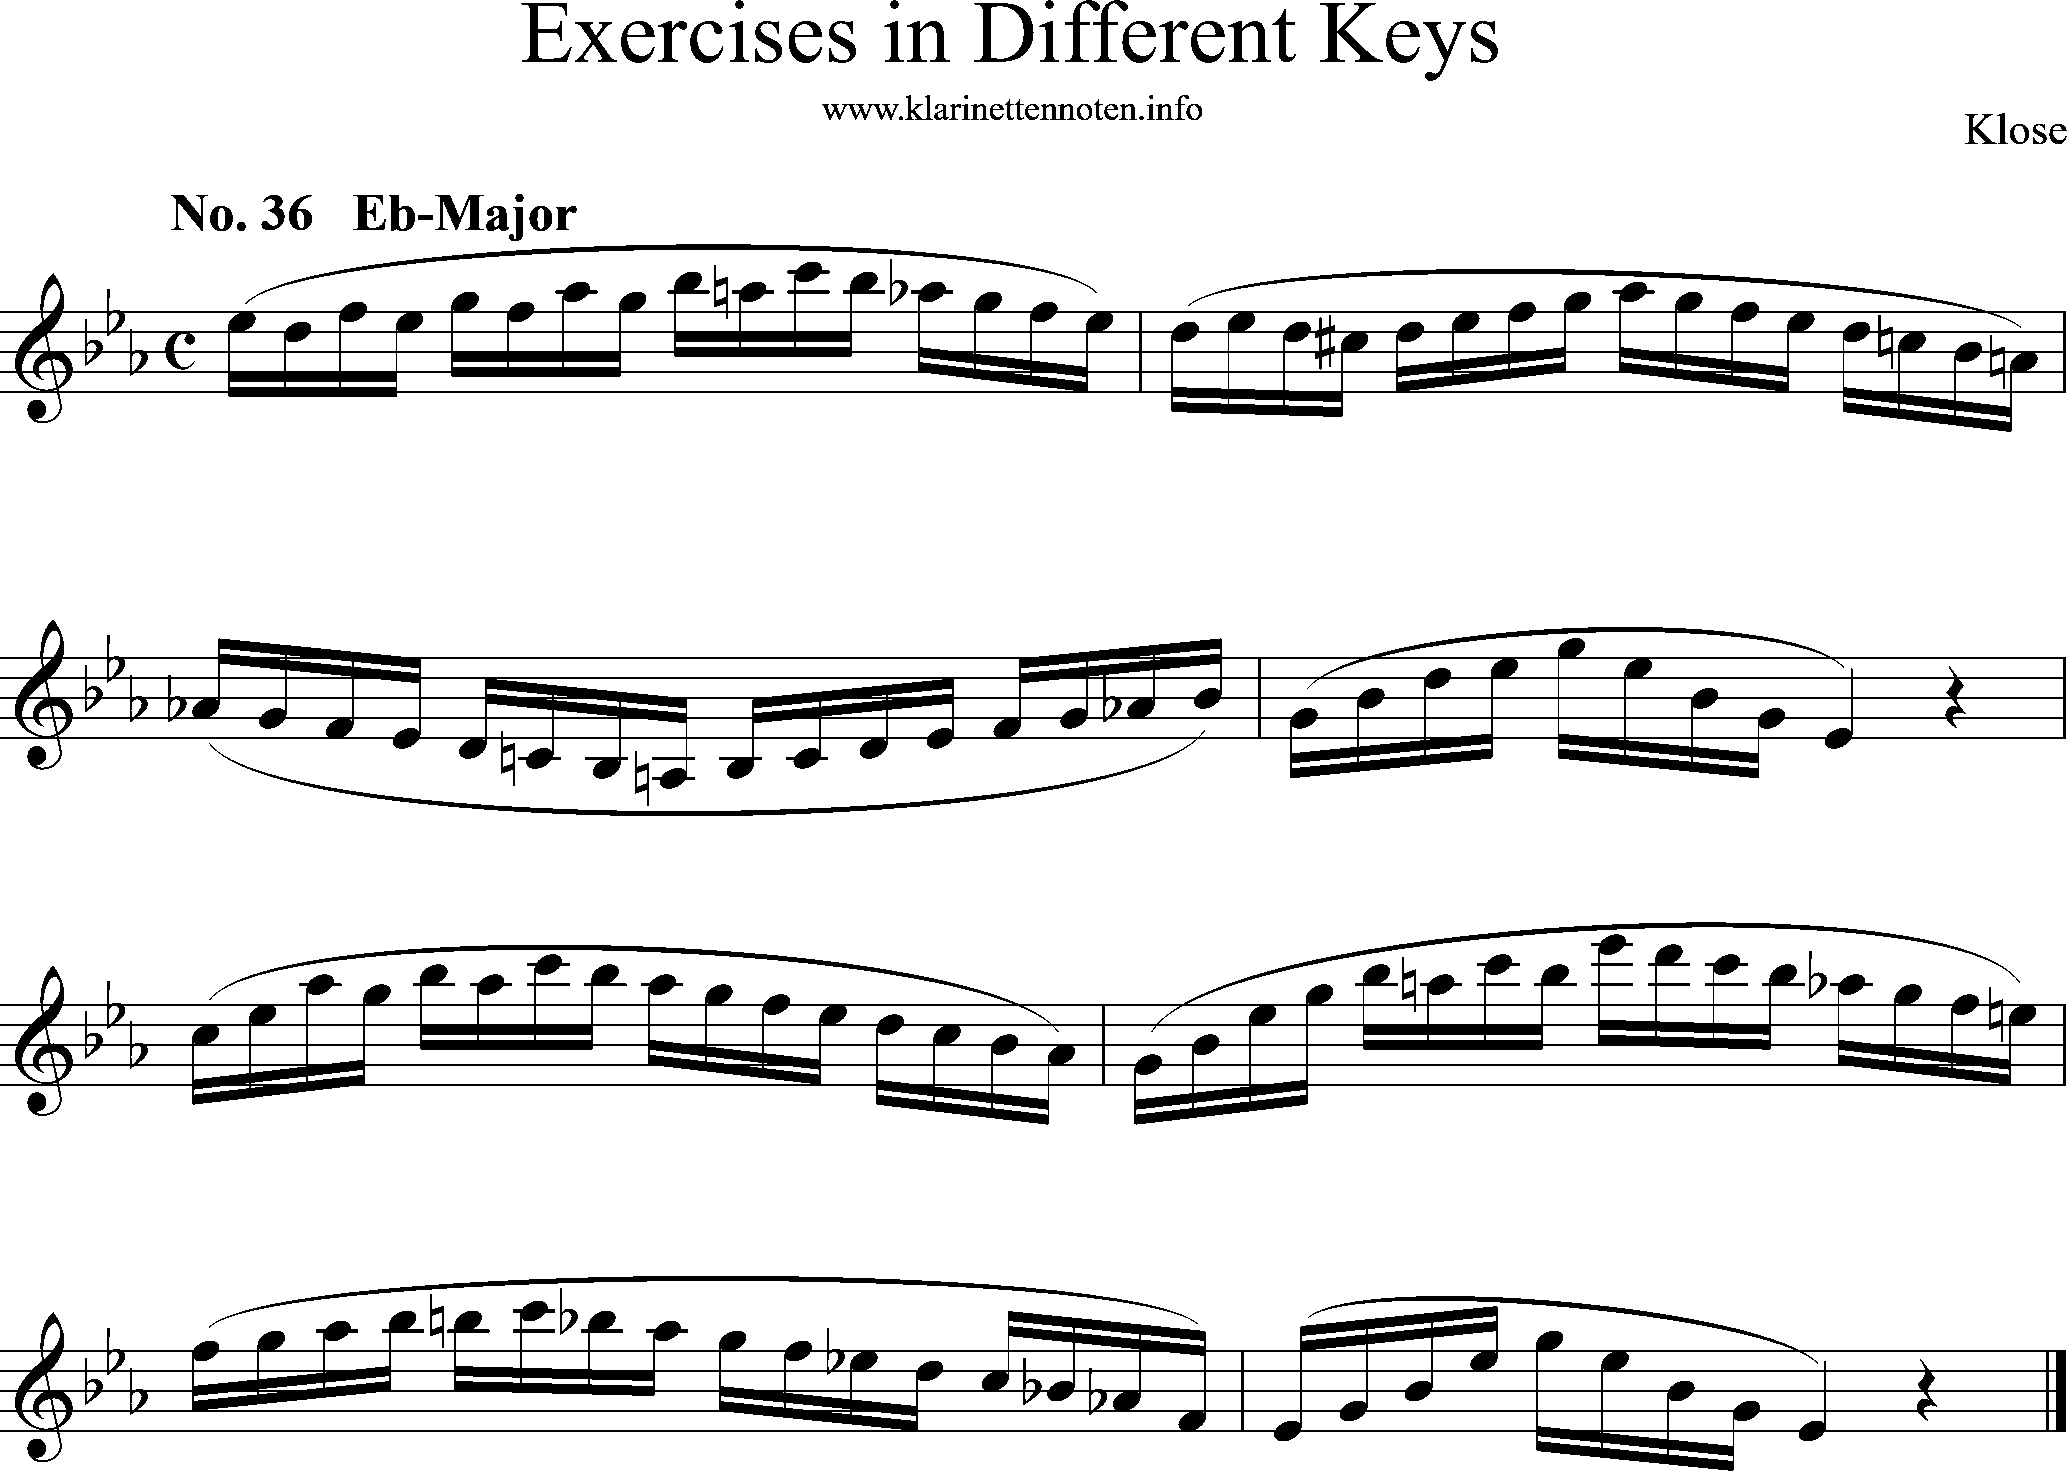 Exercises in Differewnt Keys, klose, No-36, Eb-Major